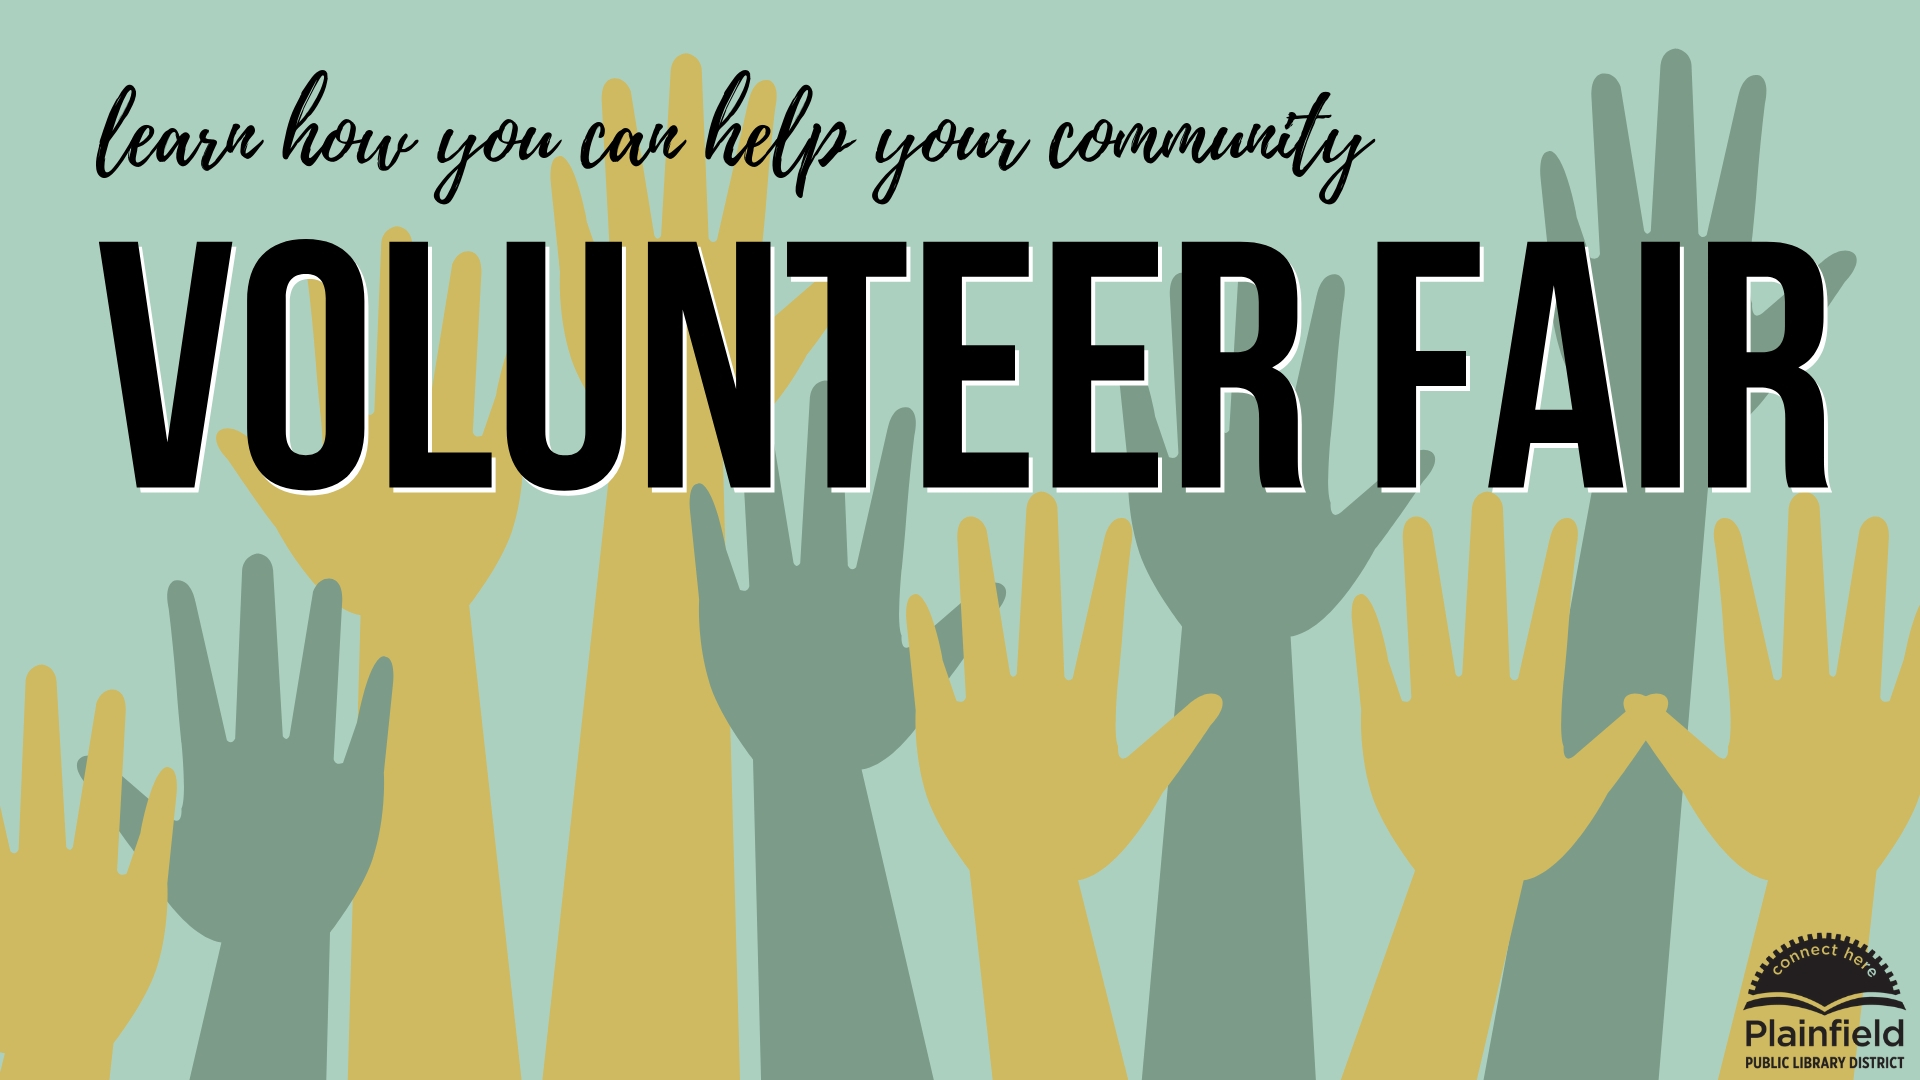 Volunteer Fair graphic